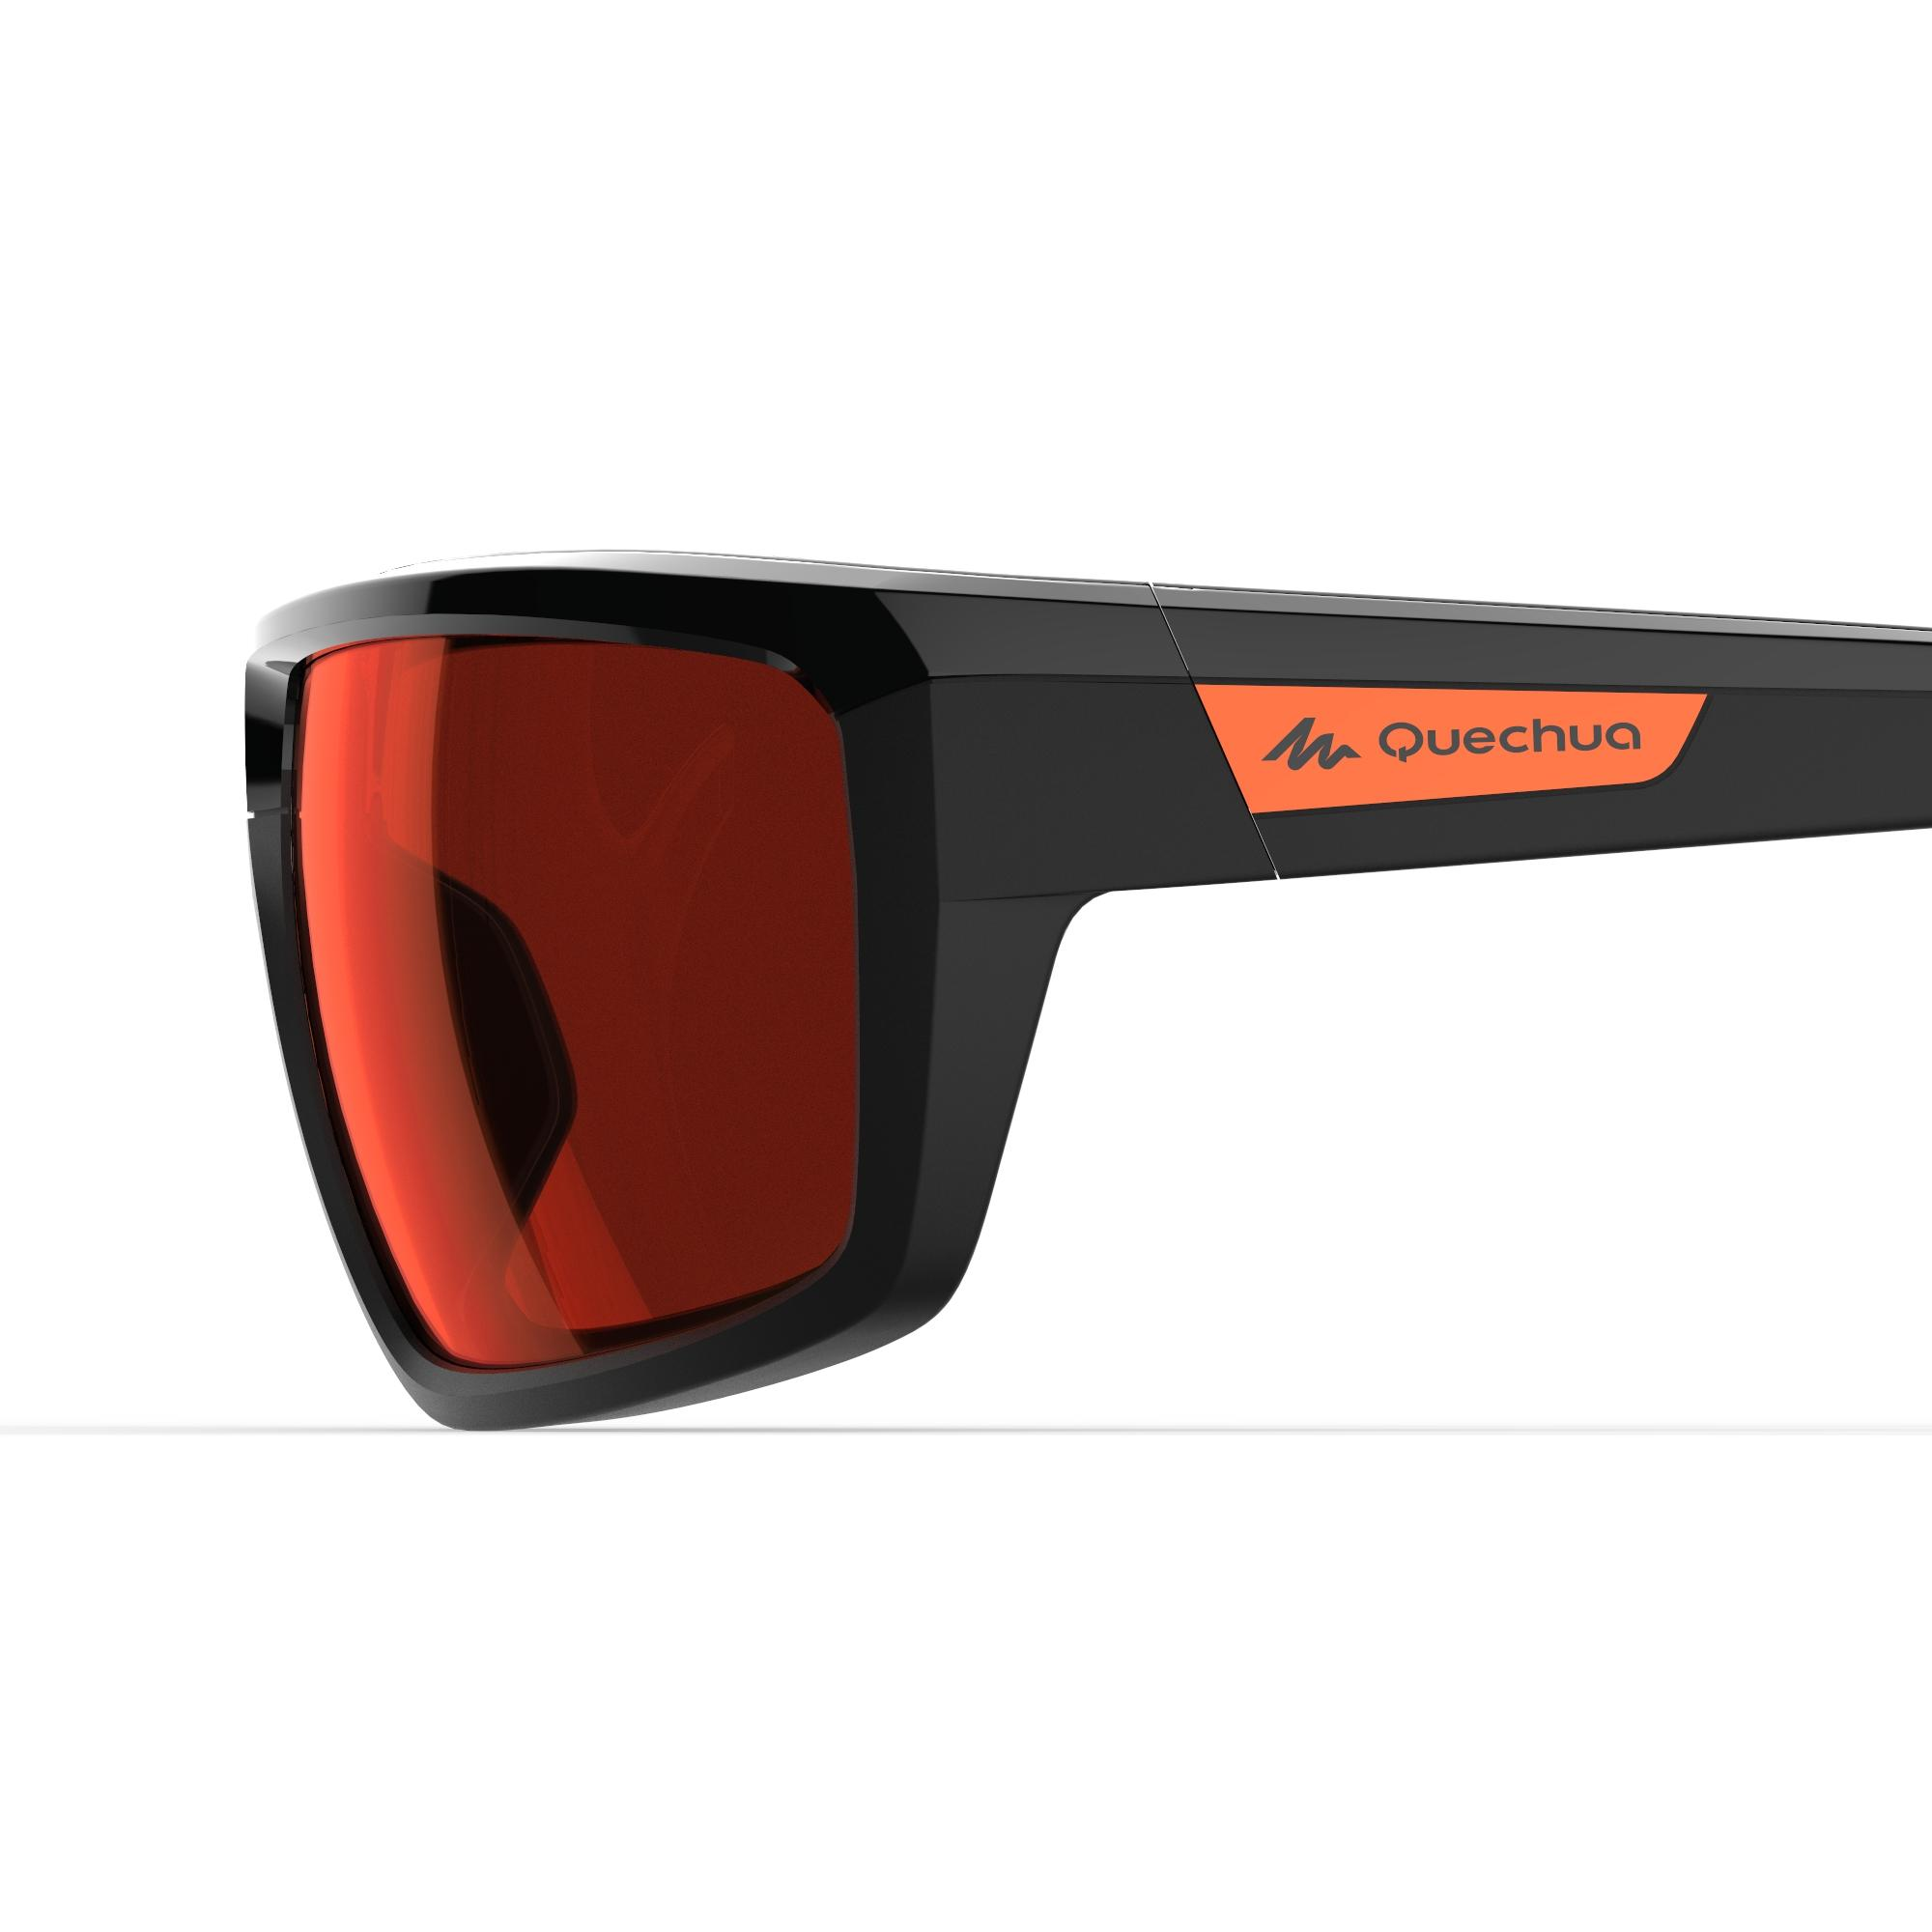 Hiking 300 Adult Category 3 Hiking Glasses - Black & Red